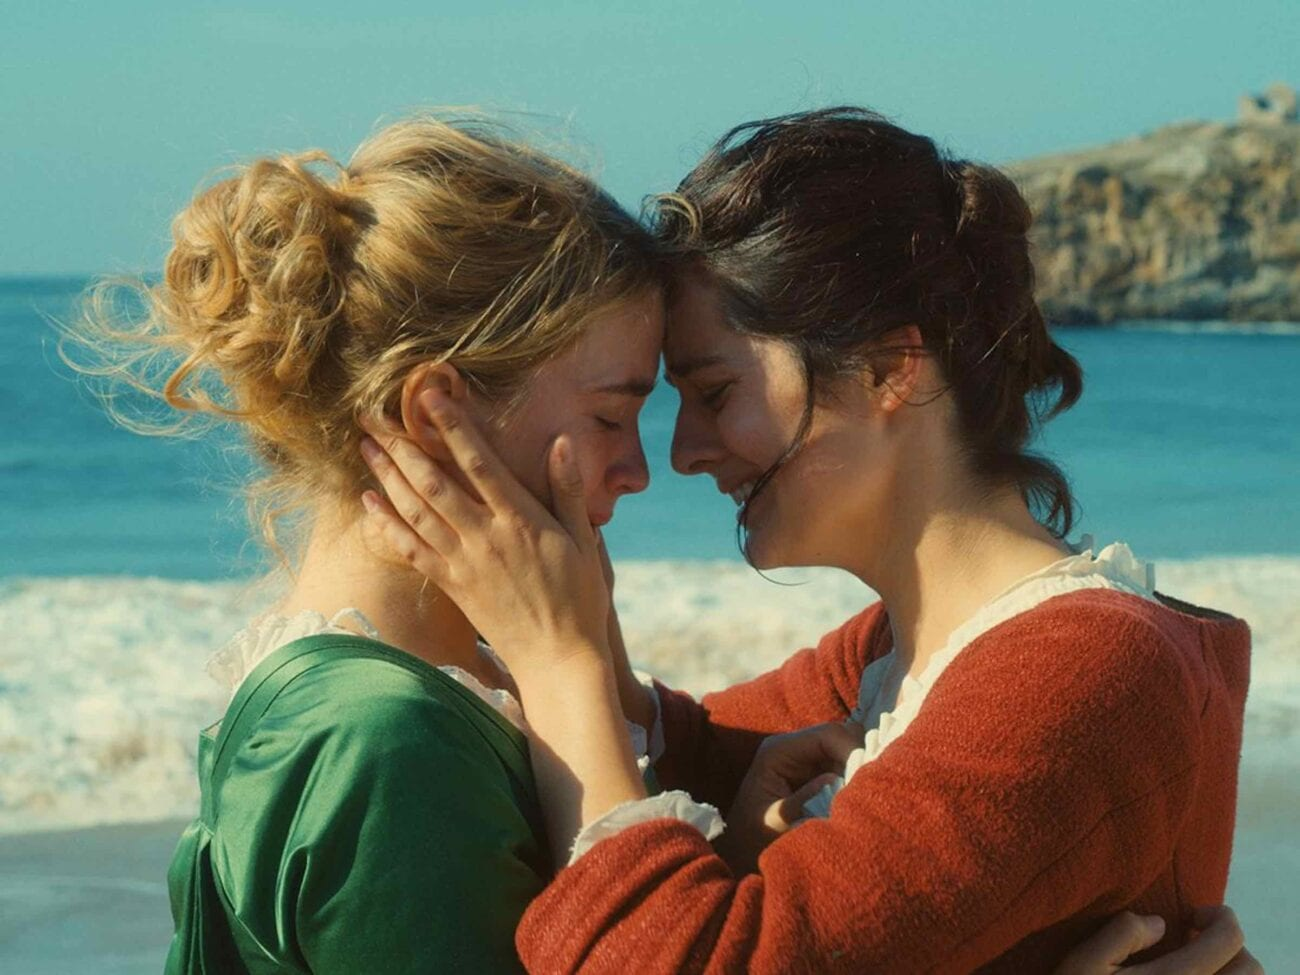 While they're far and few, there's plenty of beautiful romances focused around lesbian couples. Here's some romantic lesbian movies to watch with bae.